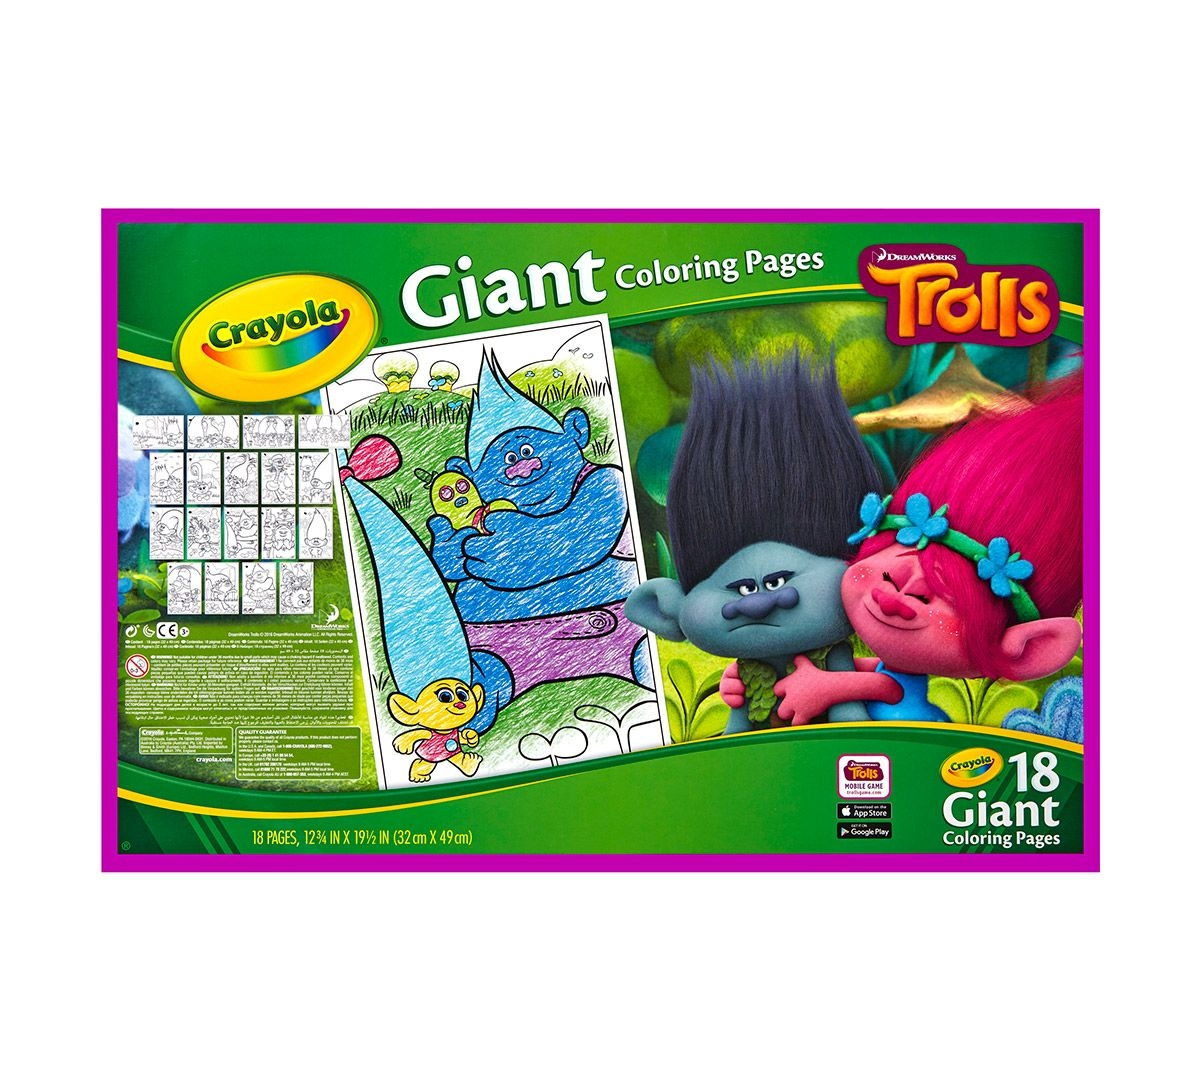 crayola giant coloring pages - giant coloring pages trolls